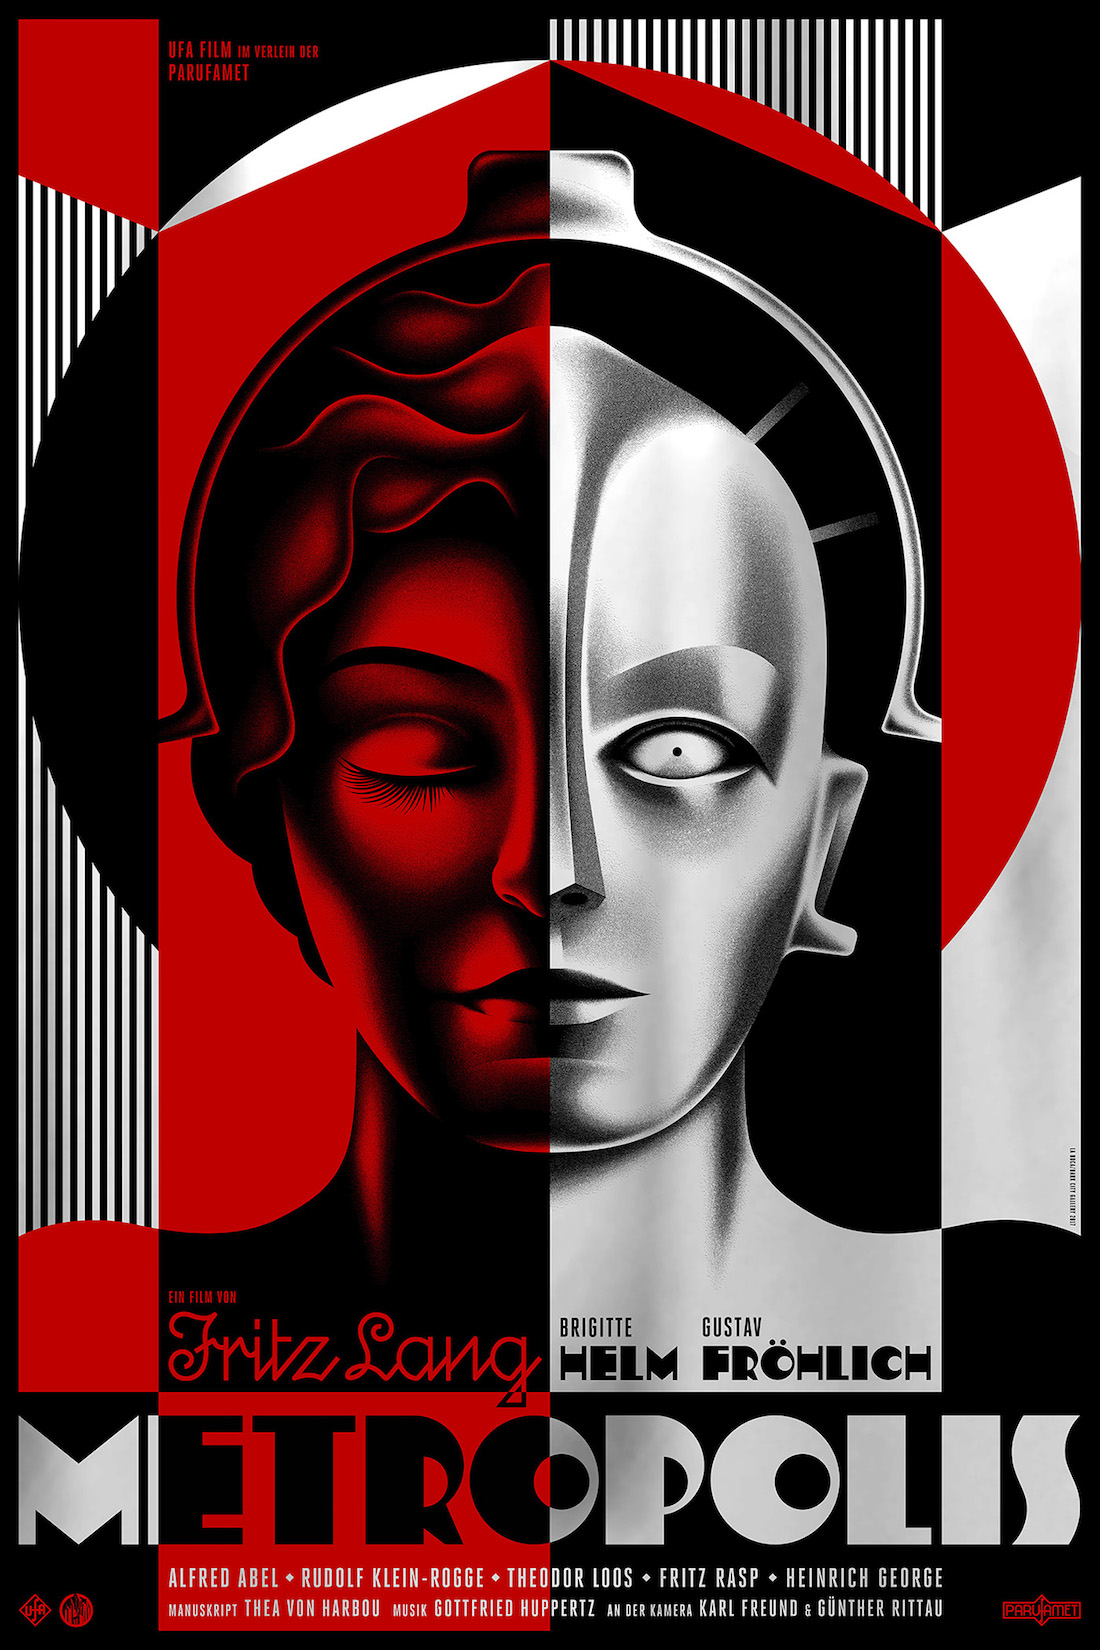 Metropolis poster by La Boca (red version)